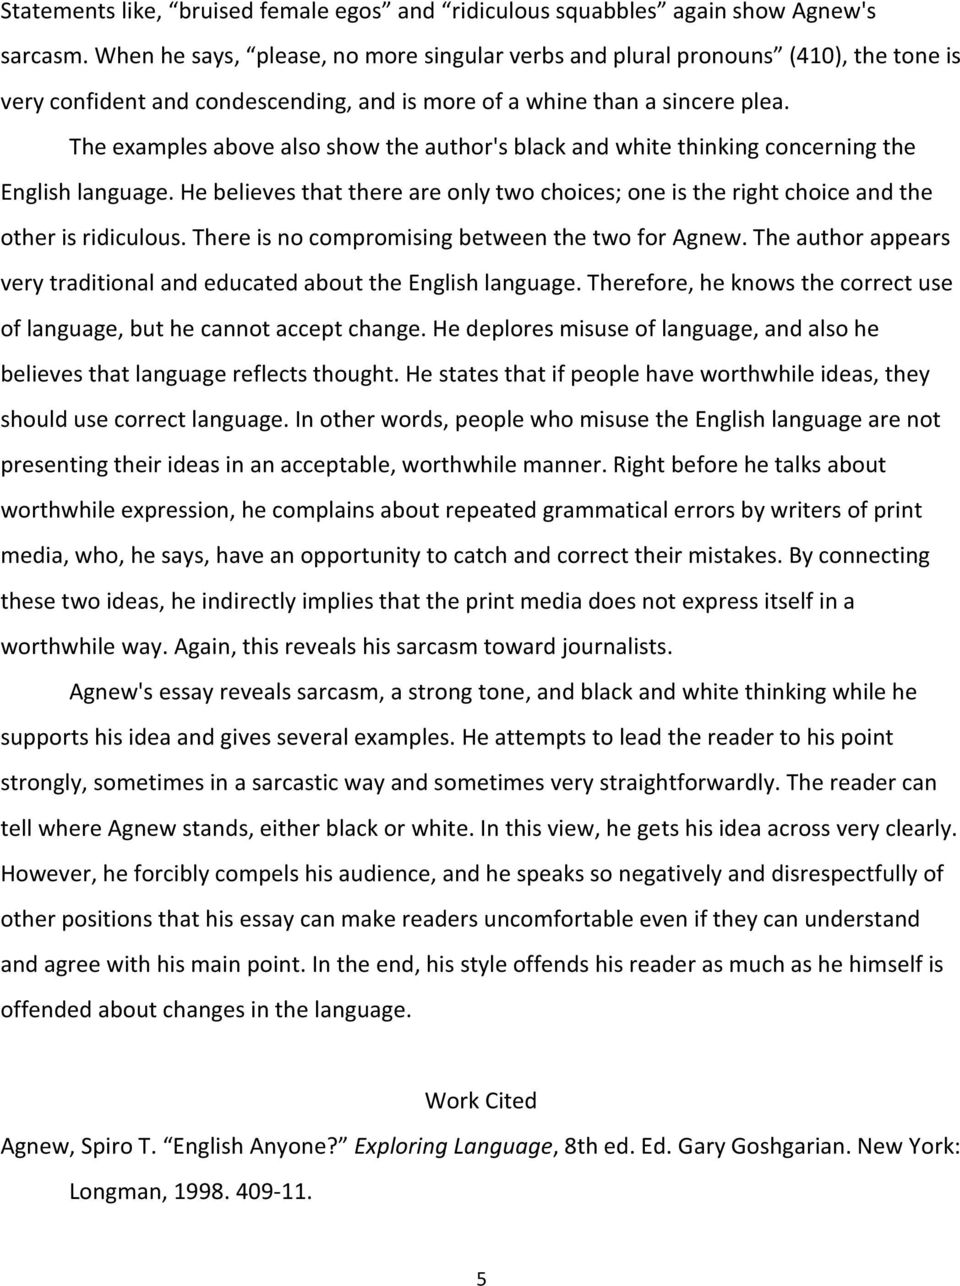 The examples above also show the author's black and white thinking concerning the English language. He believes that there are only two choices; one is the right choice and the other is ridiculous.